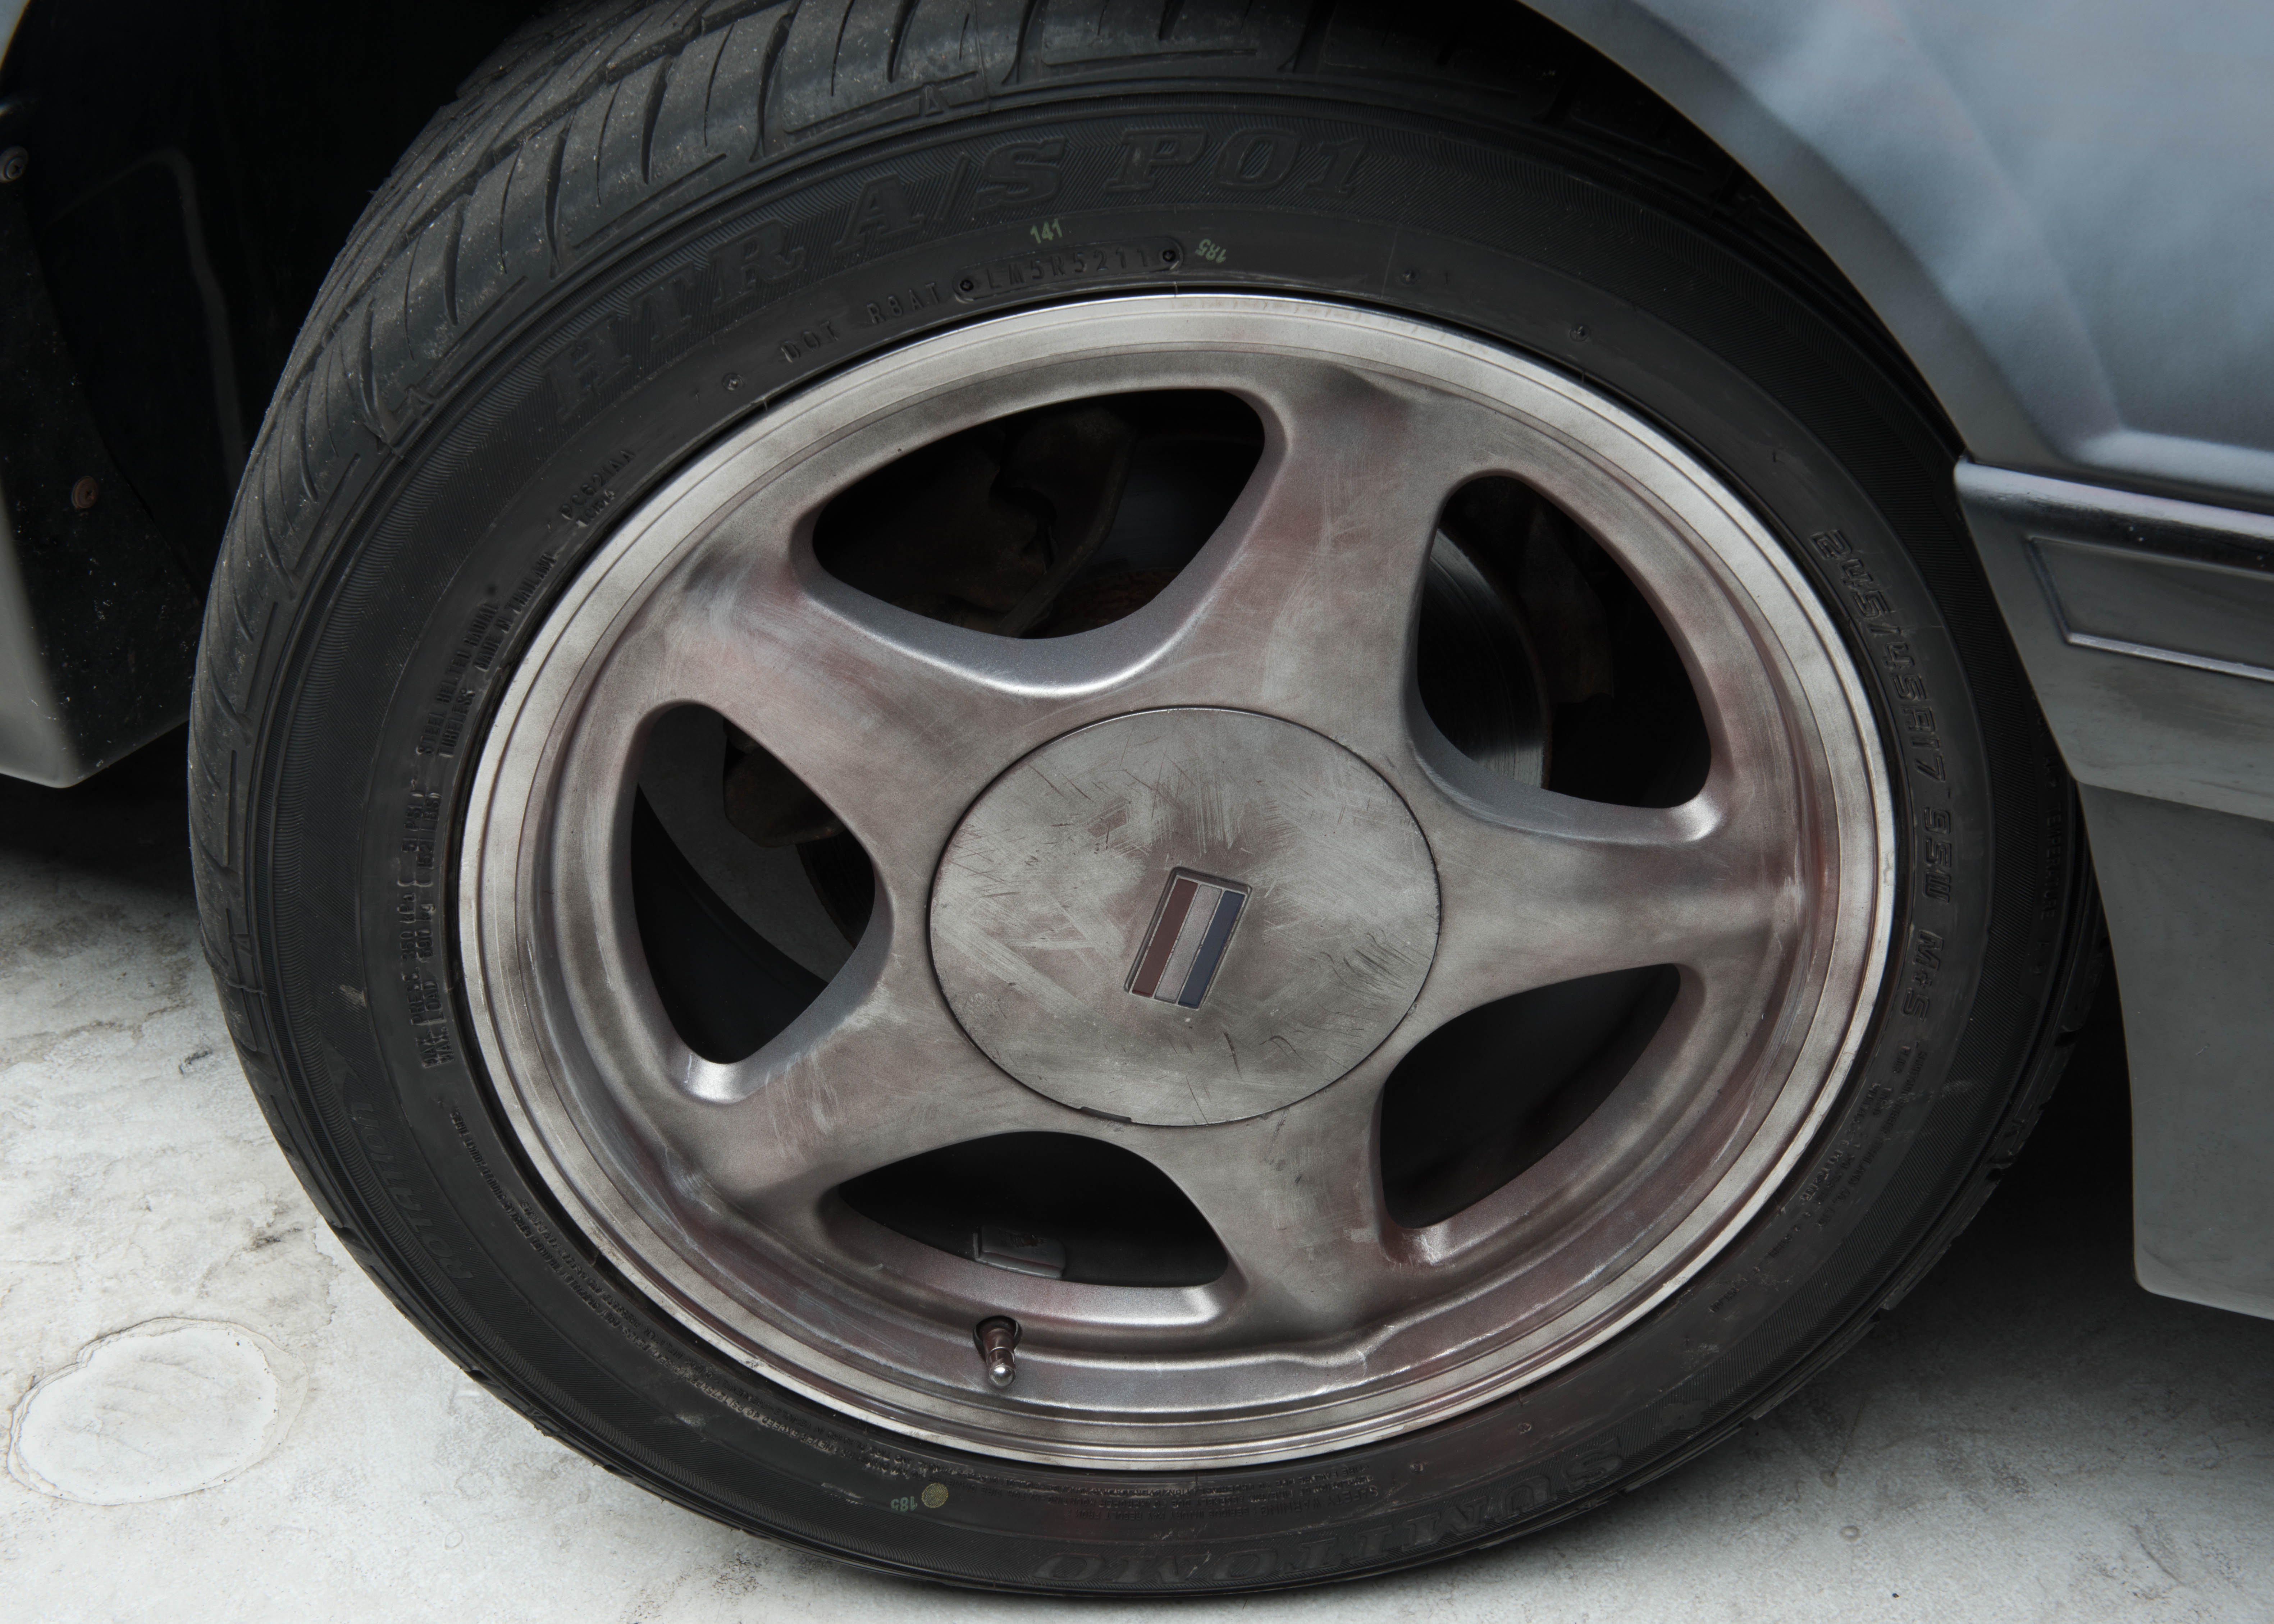 Foxbody with an Old Tire and a Dirty Rim